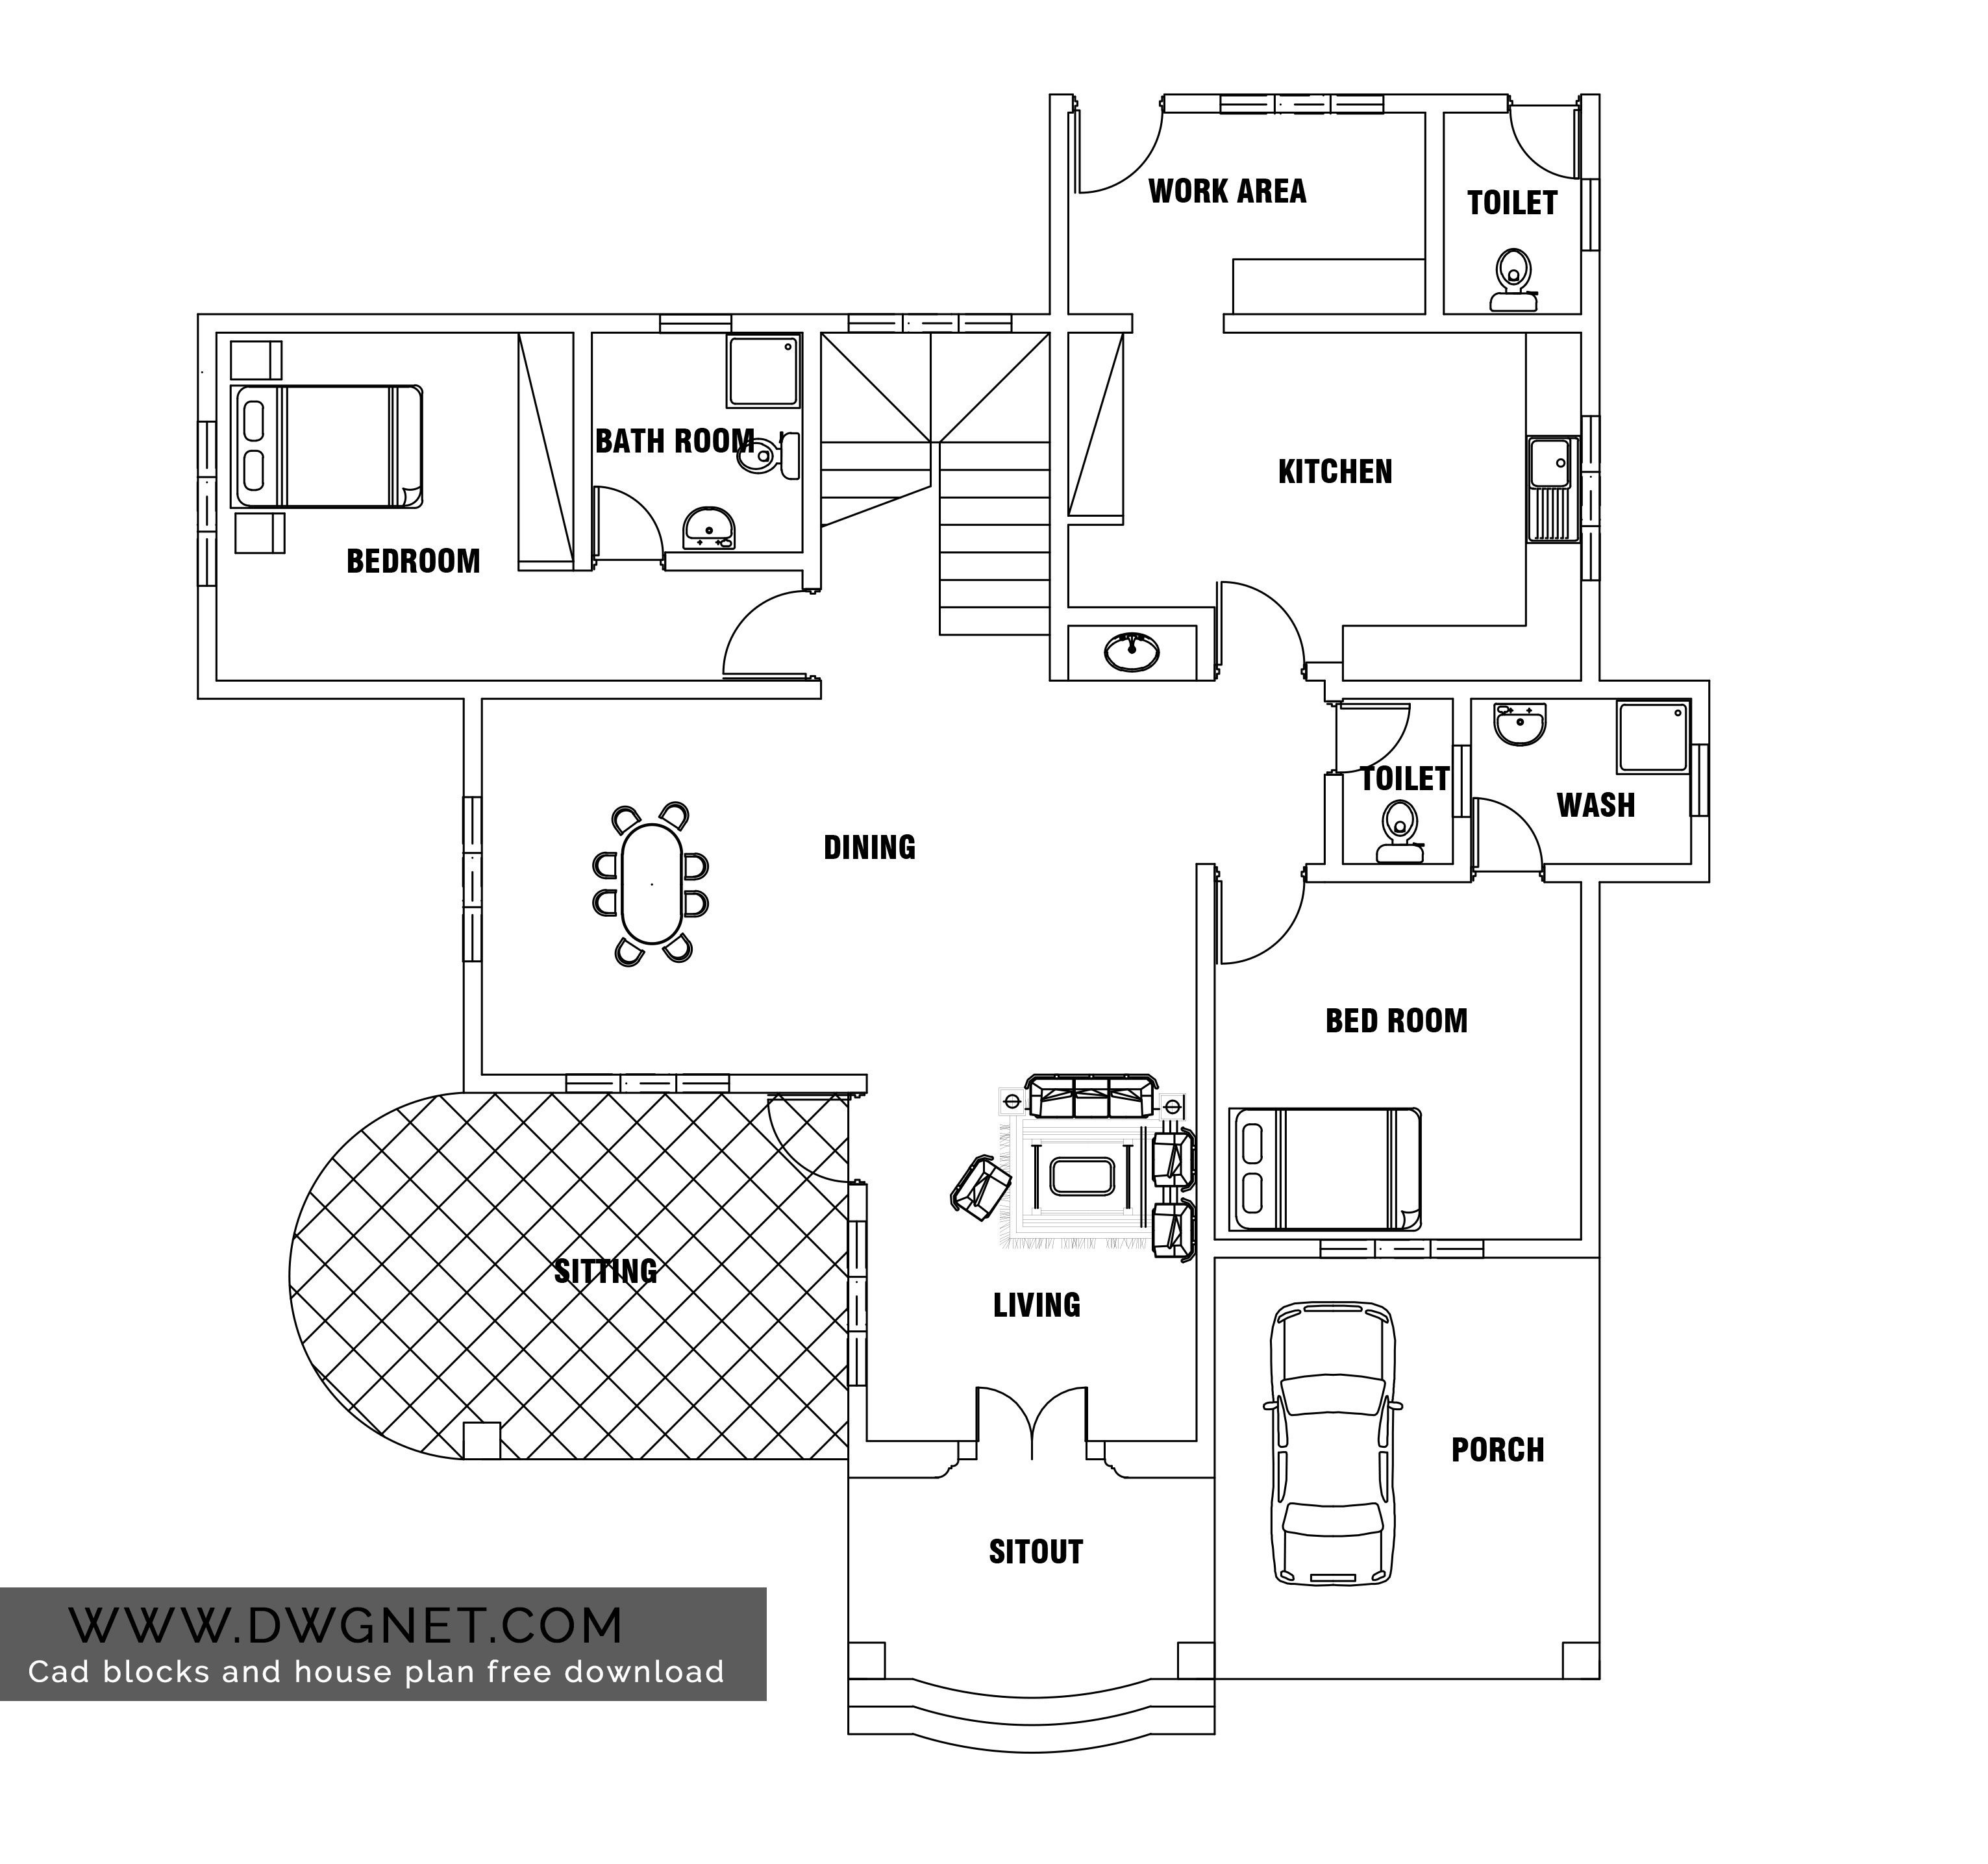 http://www.dwgnet.com/wp-content/uploads/2016/09/two-bed-room-european-style-small-house-plan-free-download-with-dwg-cad-file-from-dwgnet.jpg